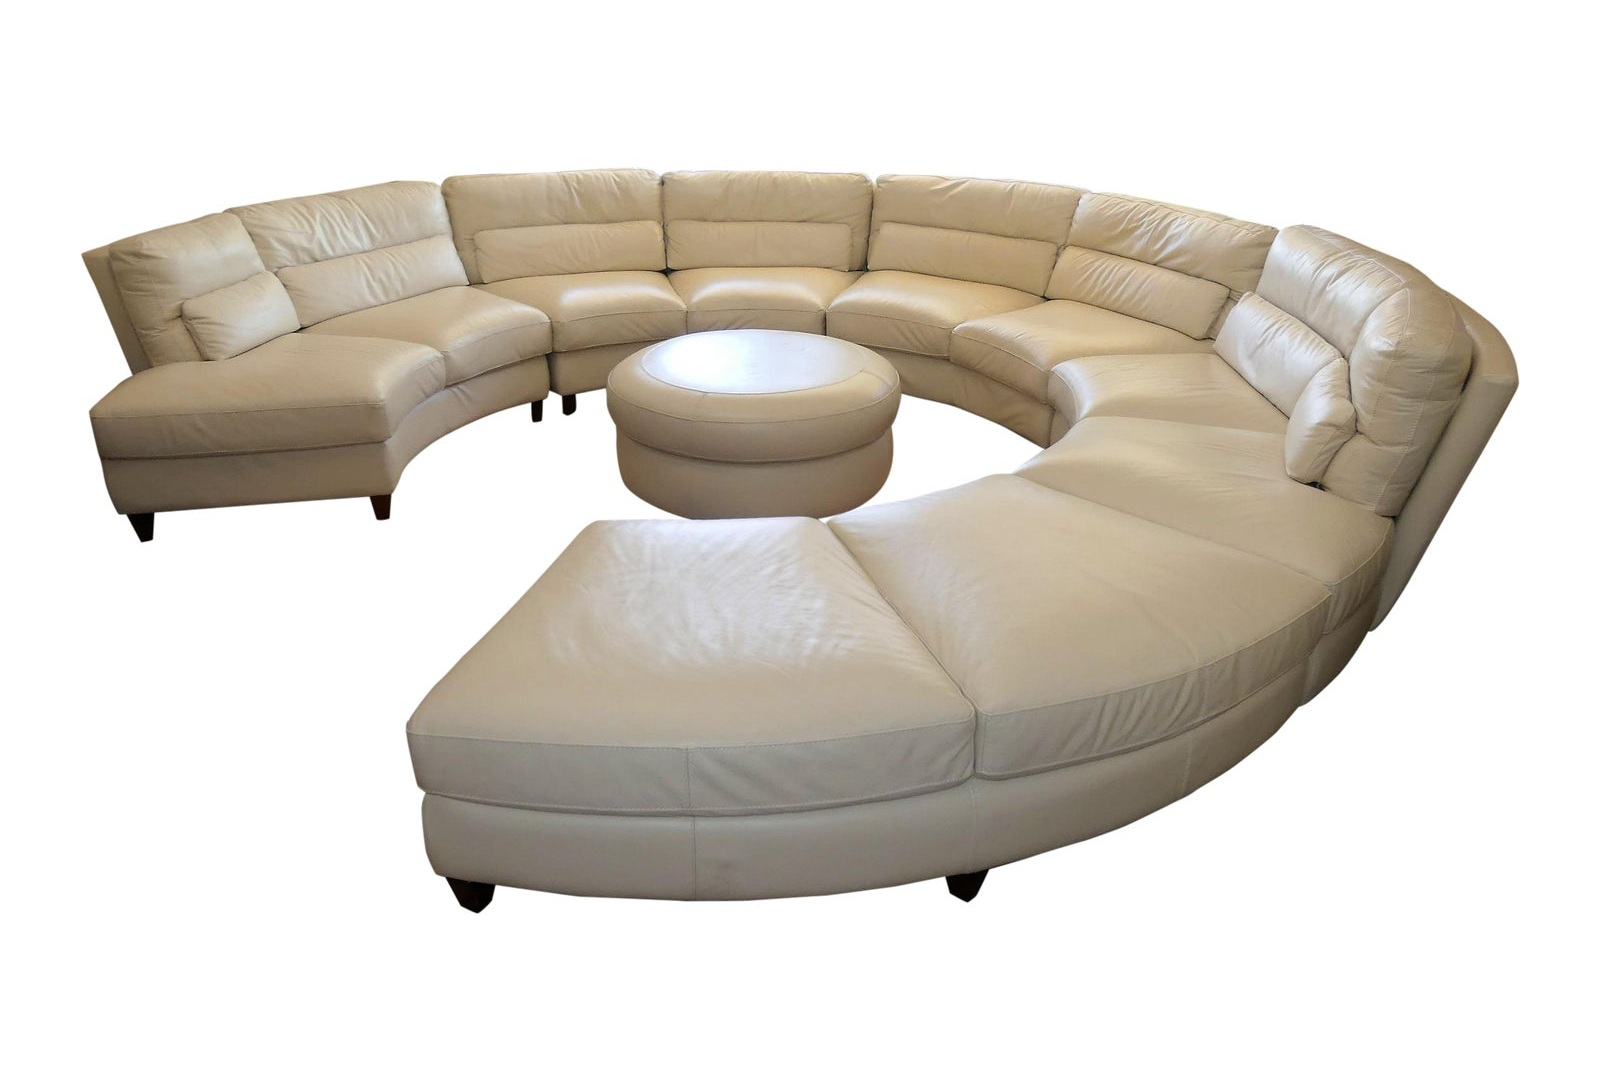 Chateau d'Ax Italian Leather Sectional